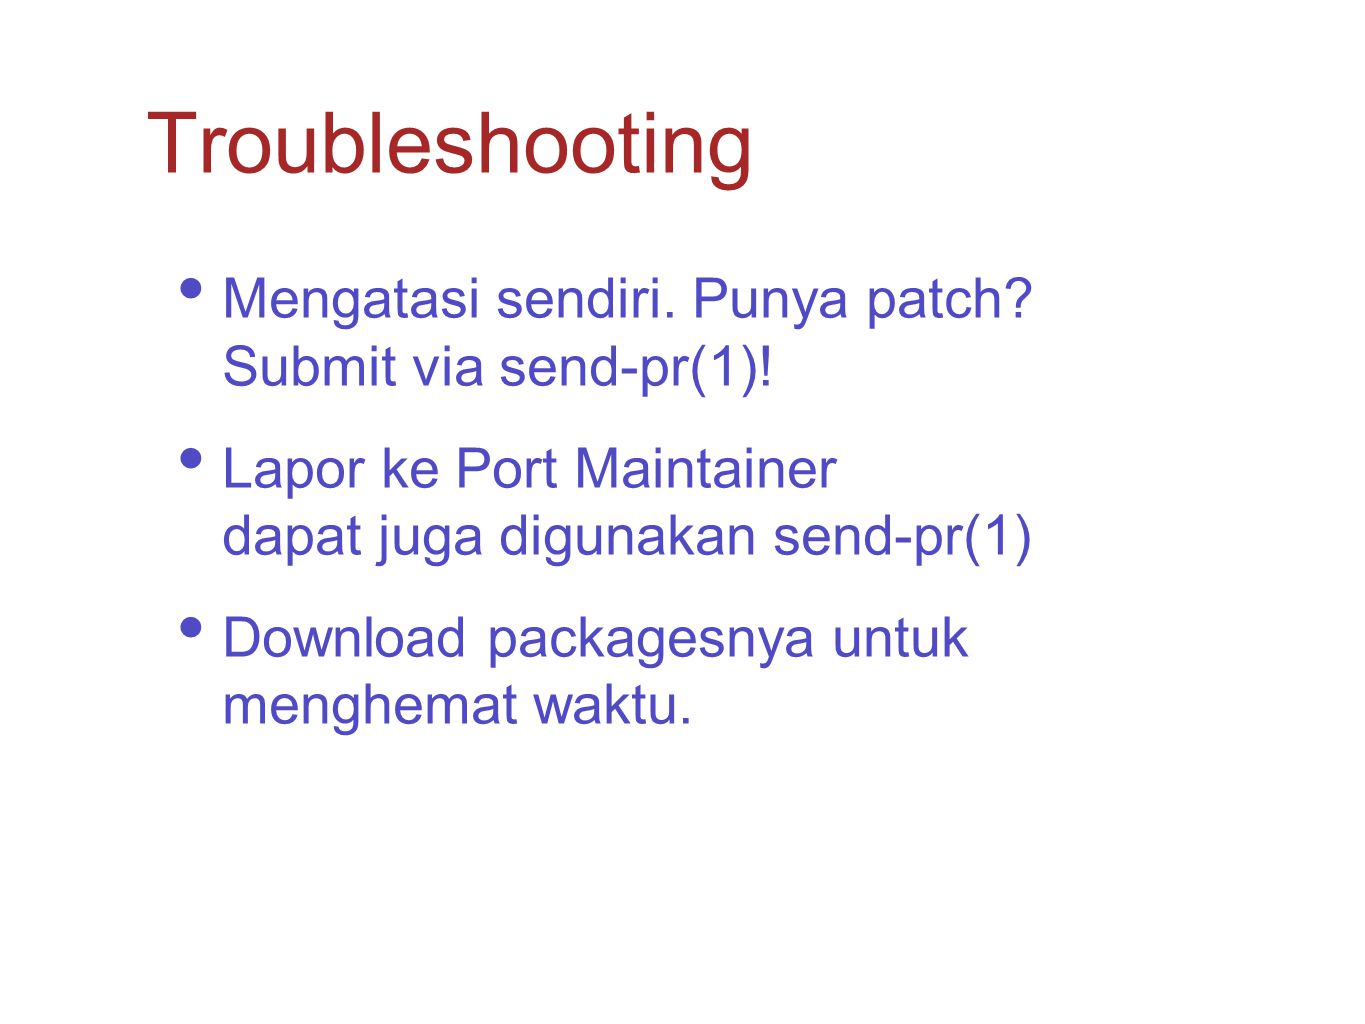 Troubleshooting Mengatasi sendiri. Punya patch Submit via send-pr(1)!